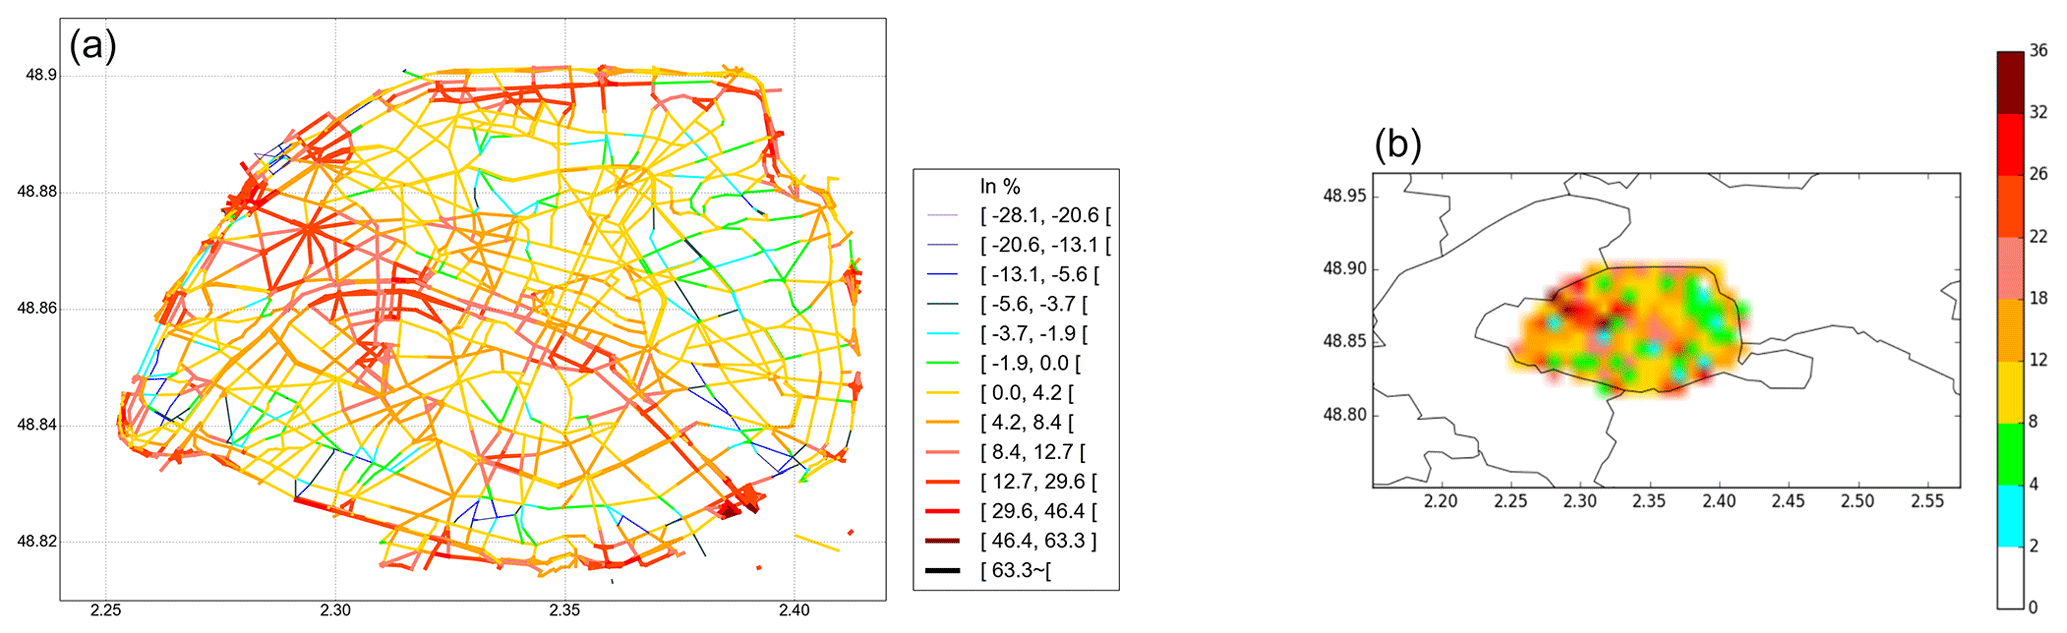 Acp Nonstationary Modeling Of No2 No And Nox In Paris Using The Street In Grid Model Coupling Local And Regional Scales With A Two Way Dynamic Approach